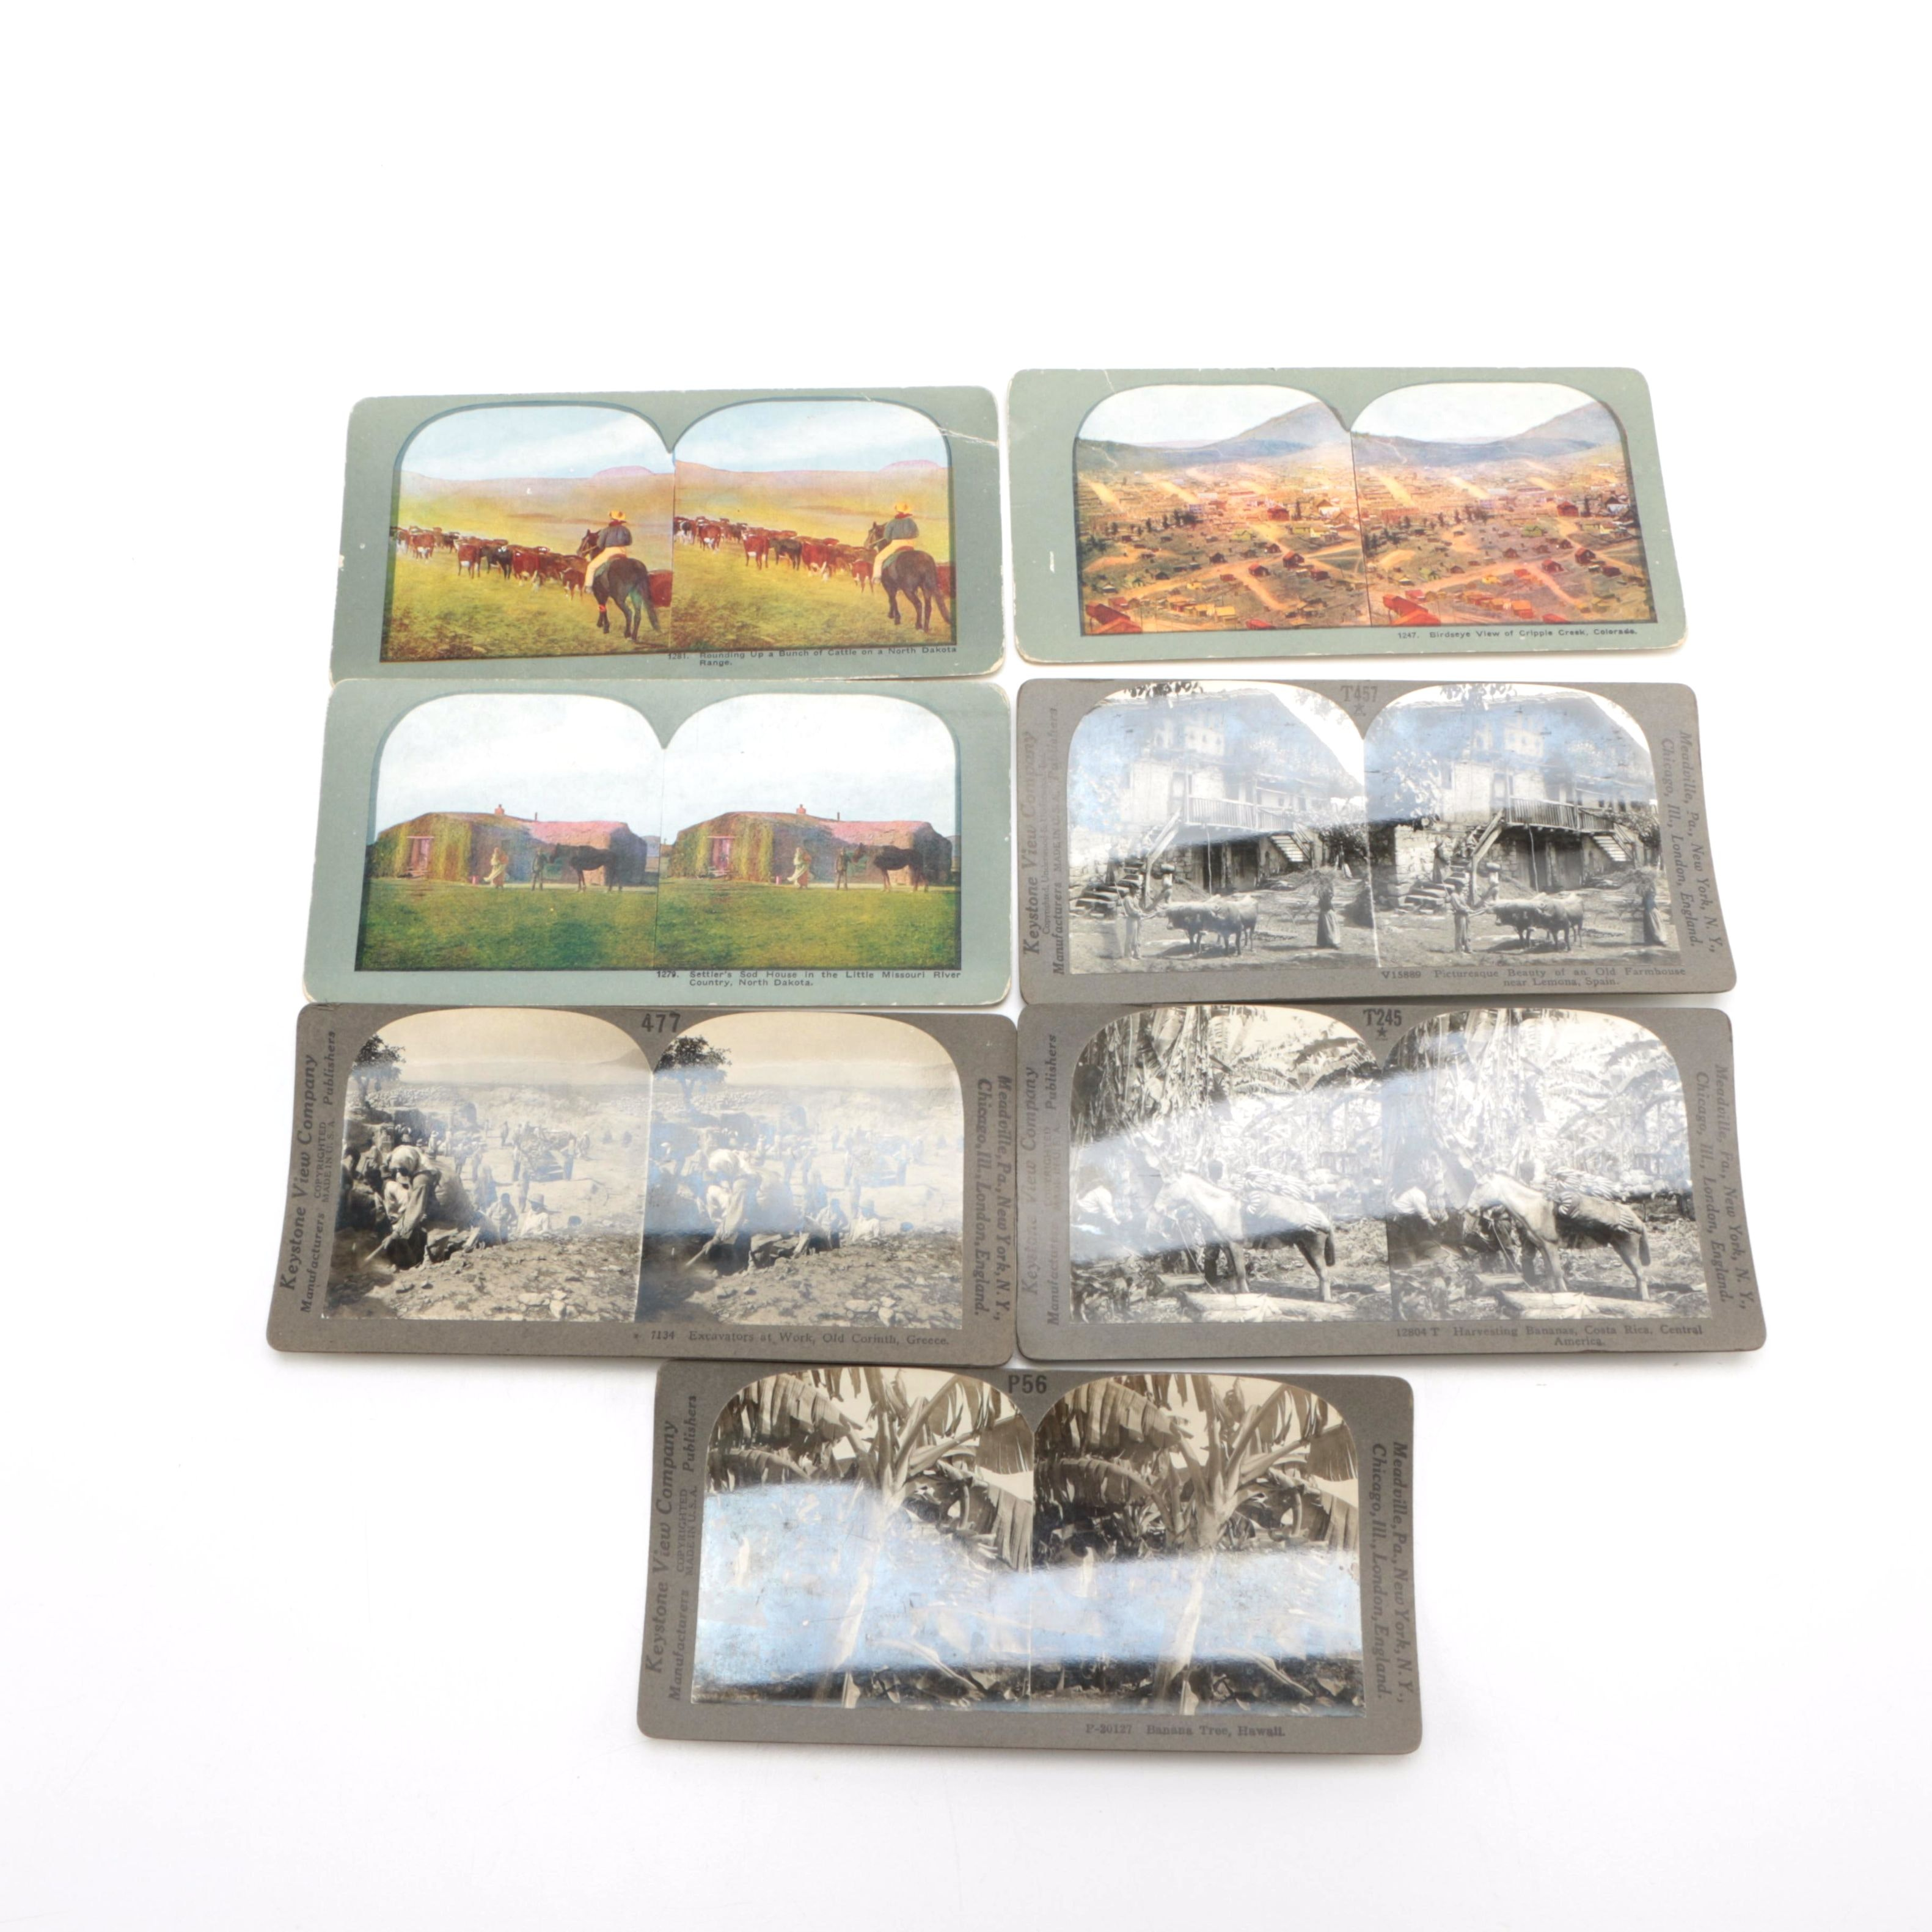 Early-Twentieth-Century Stereo Cards Including Colorized Views of the American West